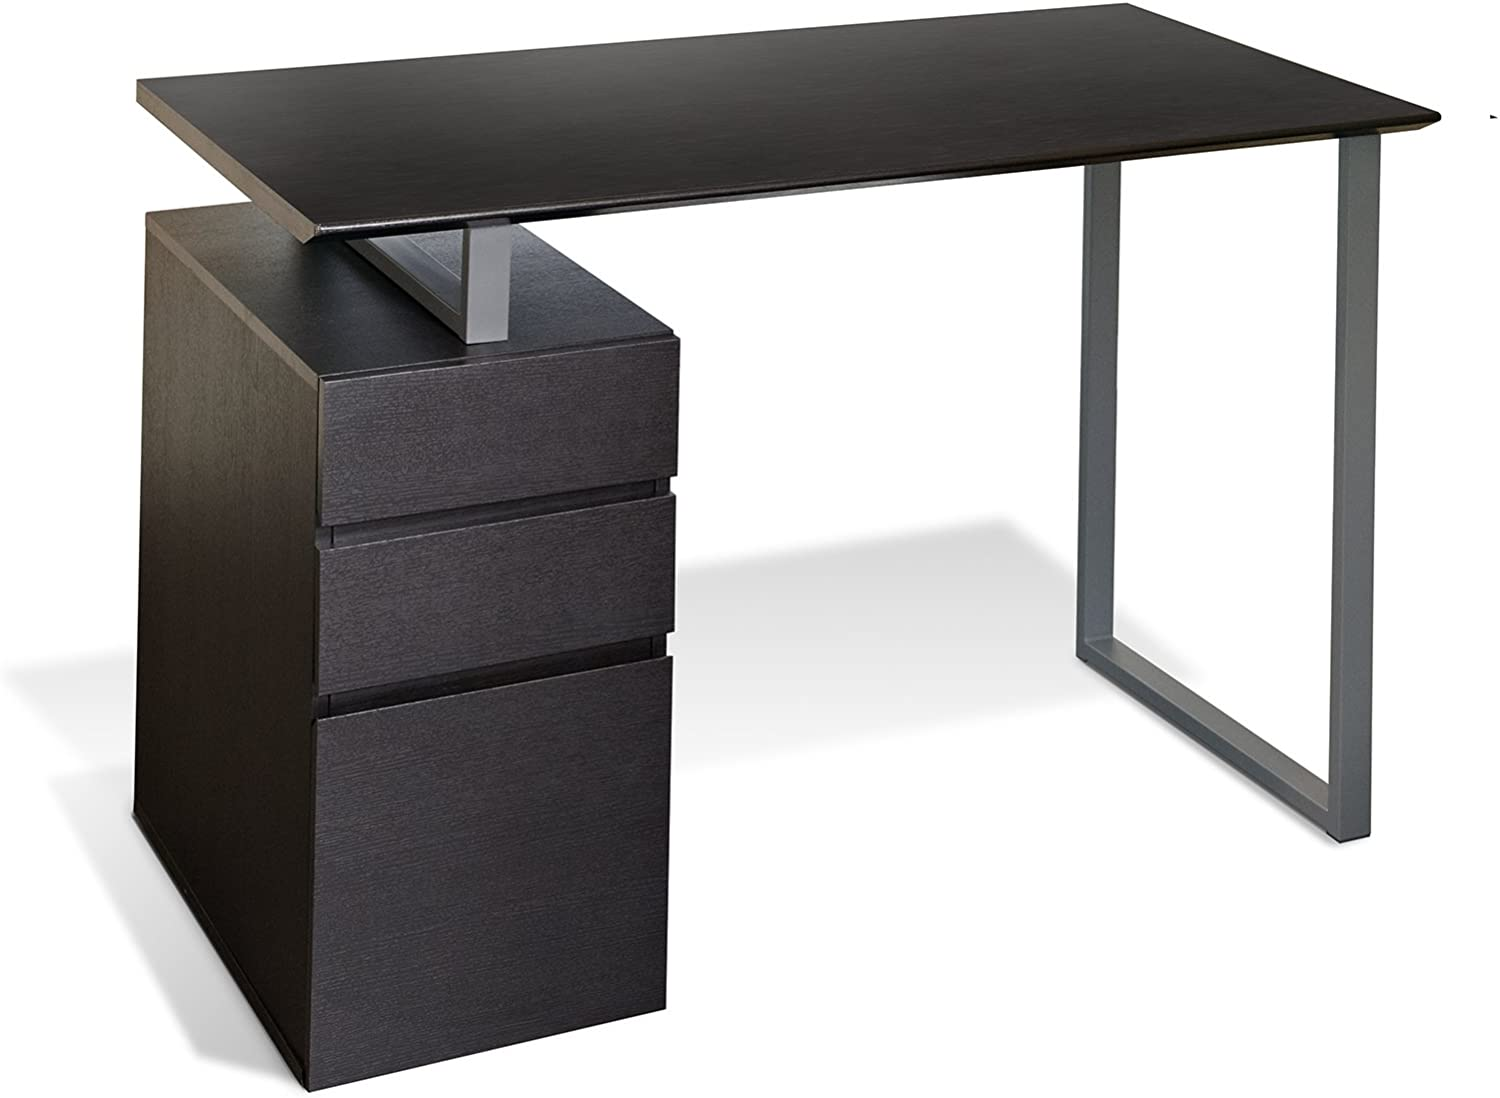 Unique National products Max 62% OFF Furniture Writing Desk Drawers Espresso with